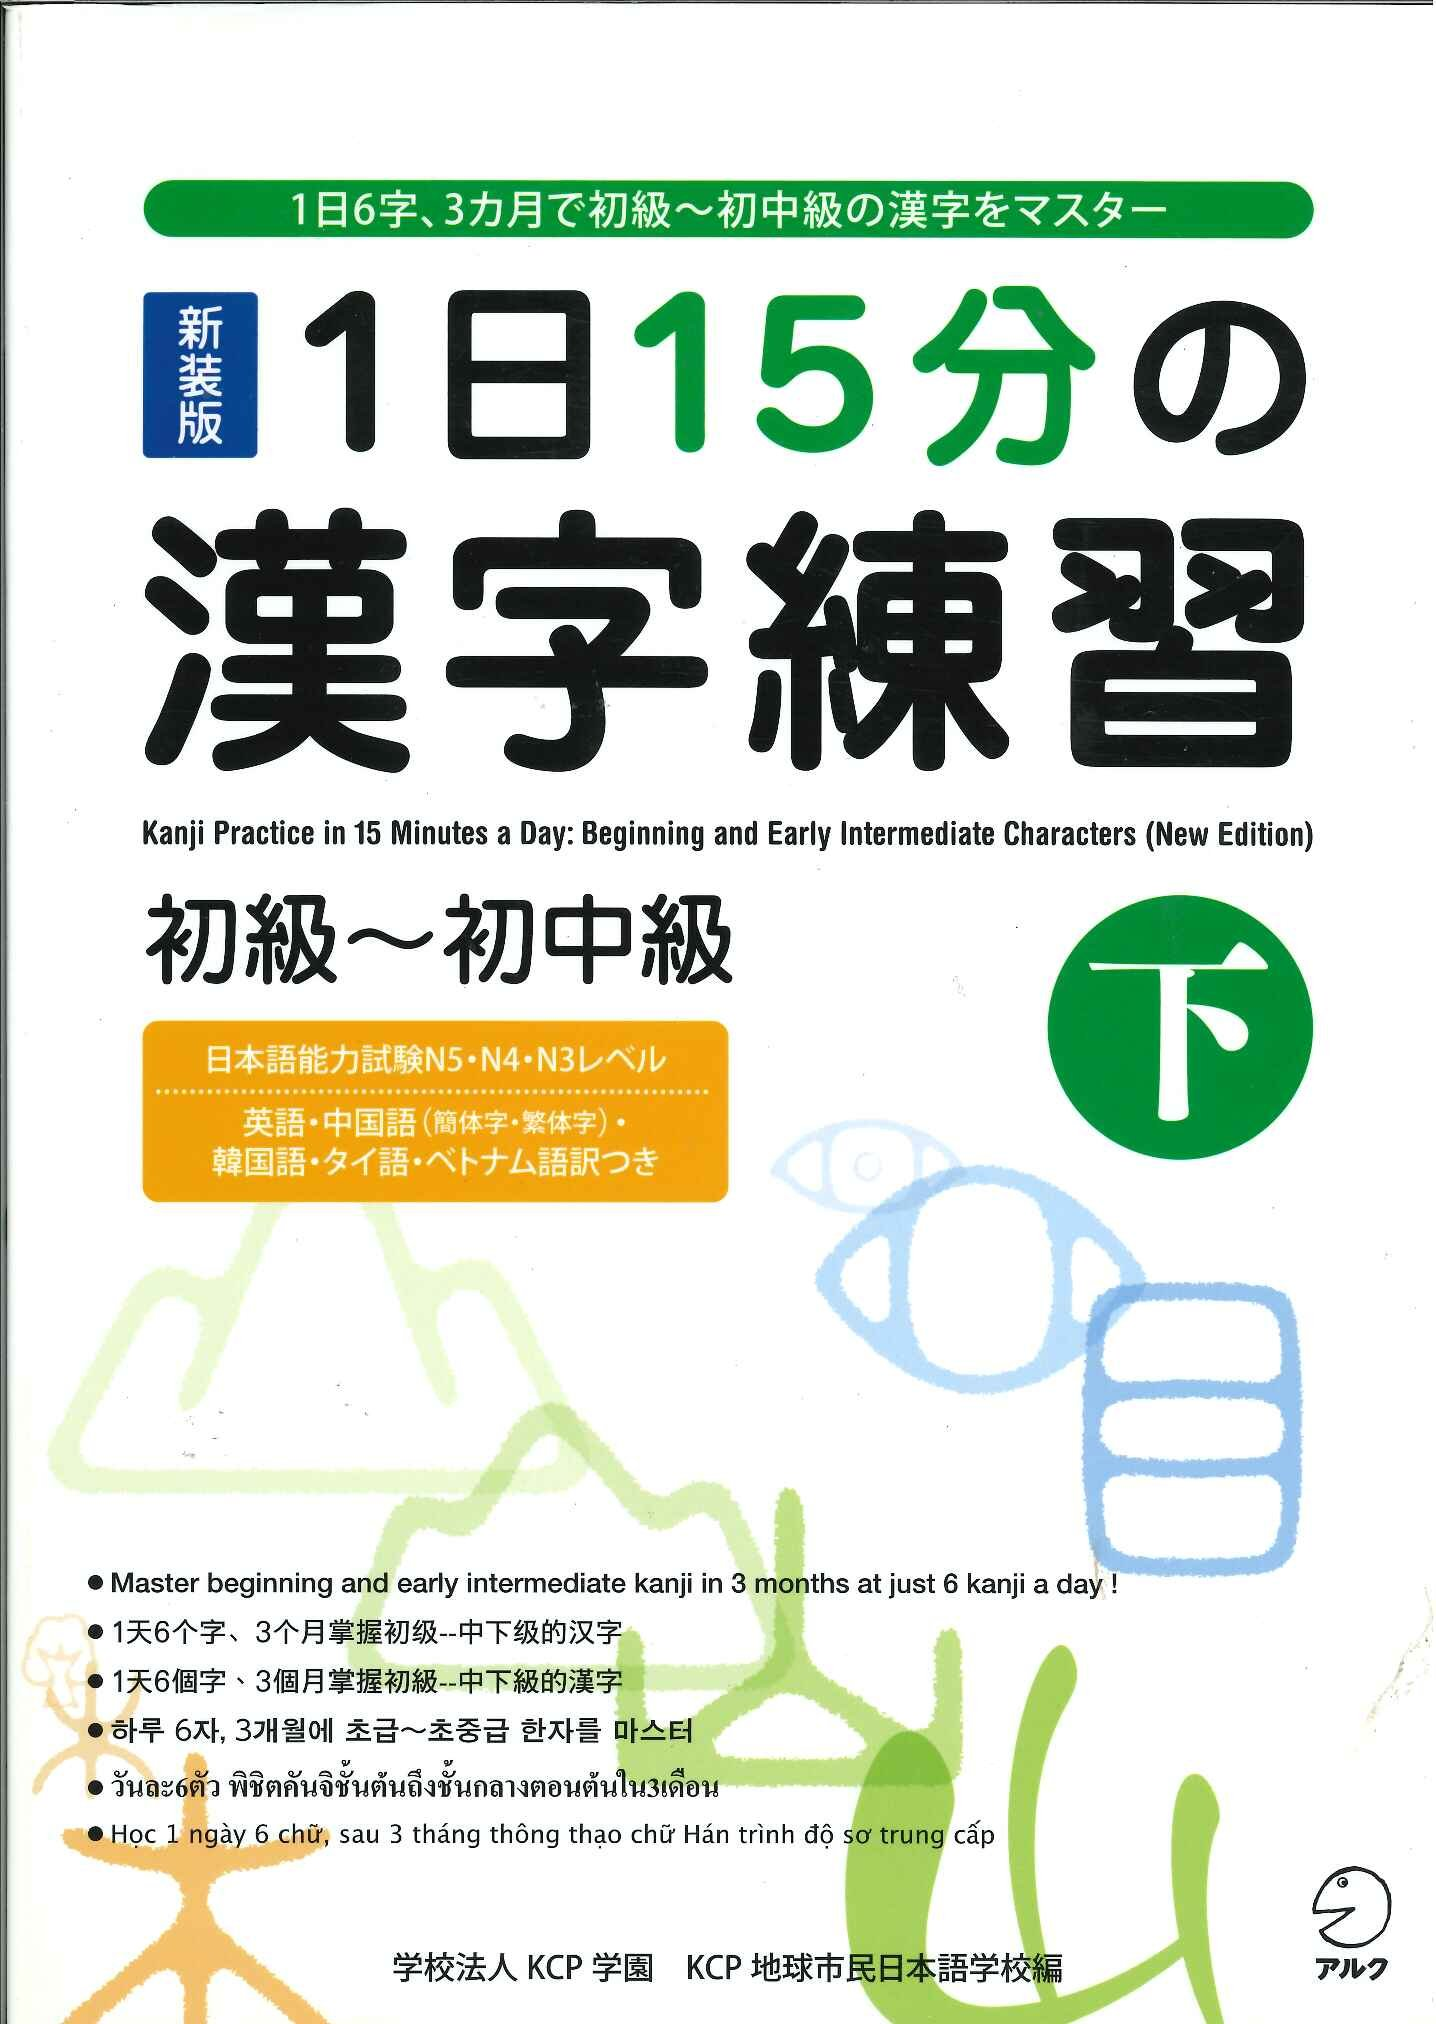 Kanji Practice in 15 Minutes a Day vol. 2 : Beginning and Early Intermediate Characters [New Edition] - Japanese Writing Study Book pdf